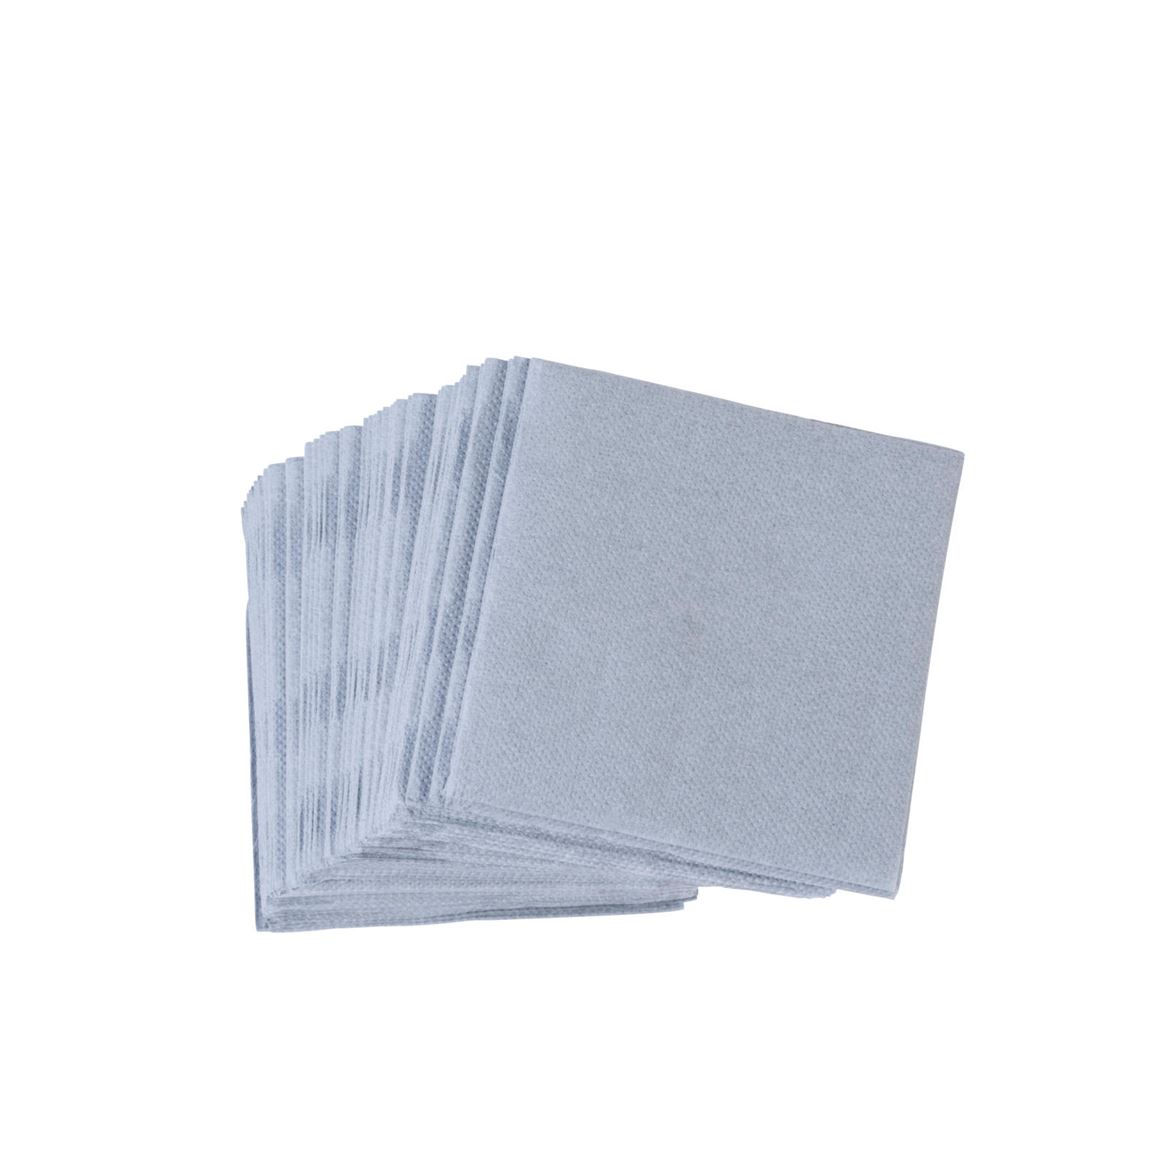 SOFT Set de 50 serviettes apéro 2 couleurs noir, gris Larg. 20 x Long. 20 cm_soft-set-de-50-serviettes-apéro-2-couleurs-noir,-gris-larg--20-x-long--20-cm